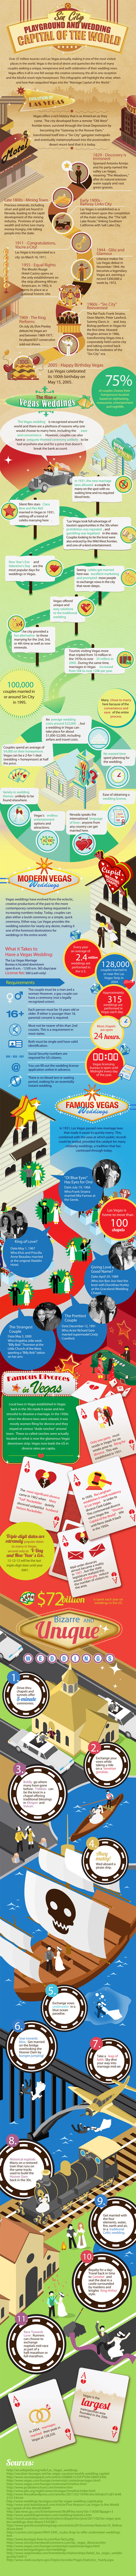 Las Vegas Wedding Infographic